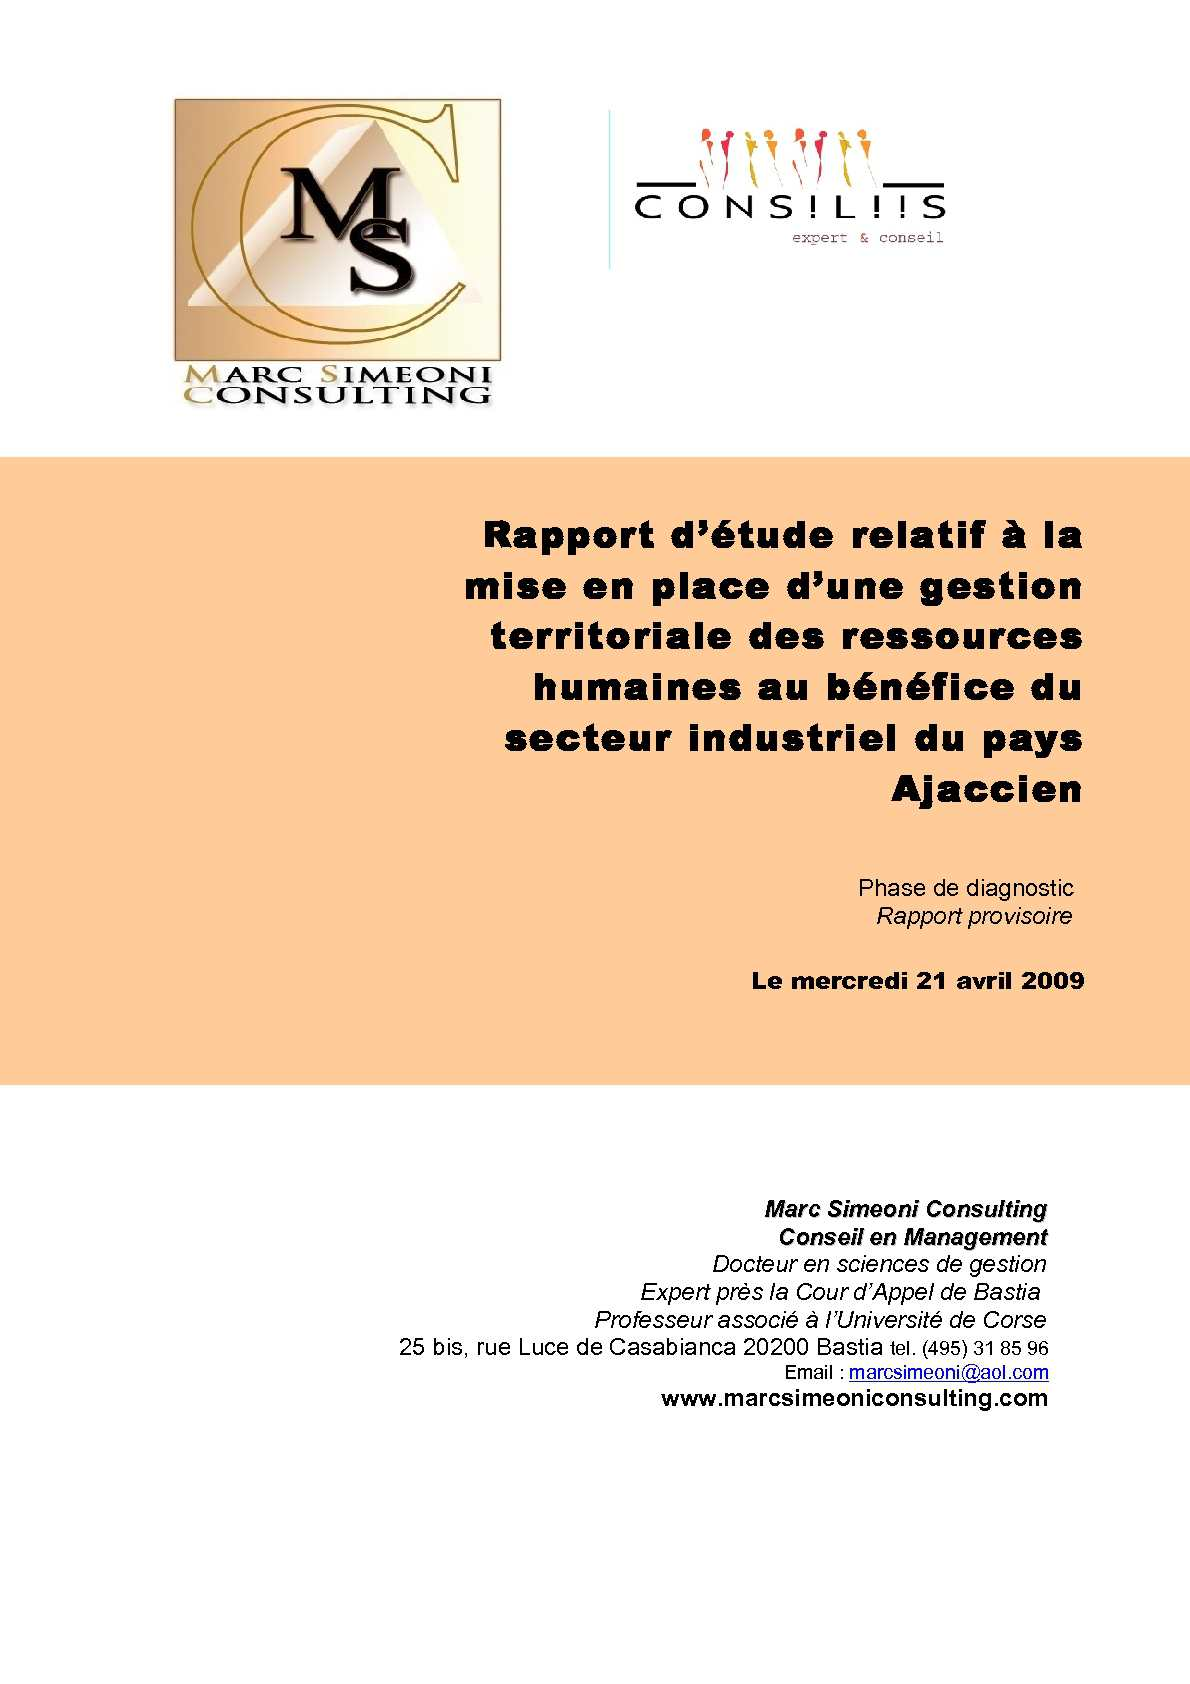 Rencontres territoriales ressources humaines